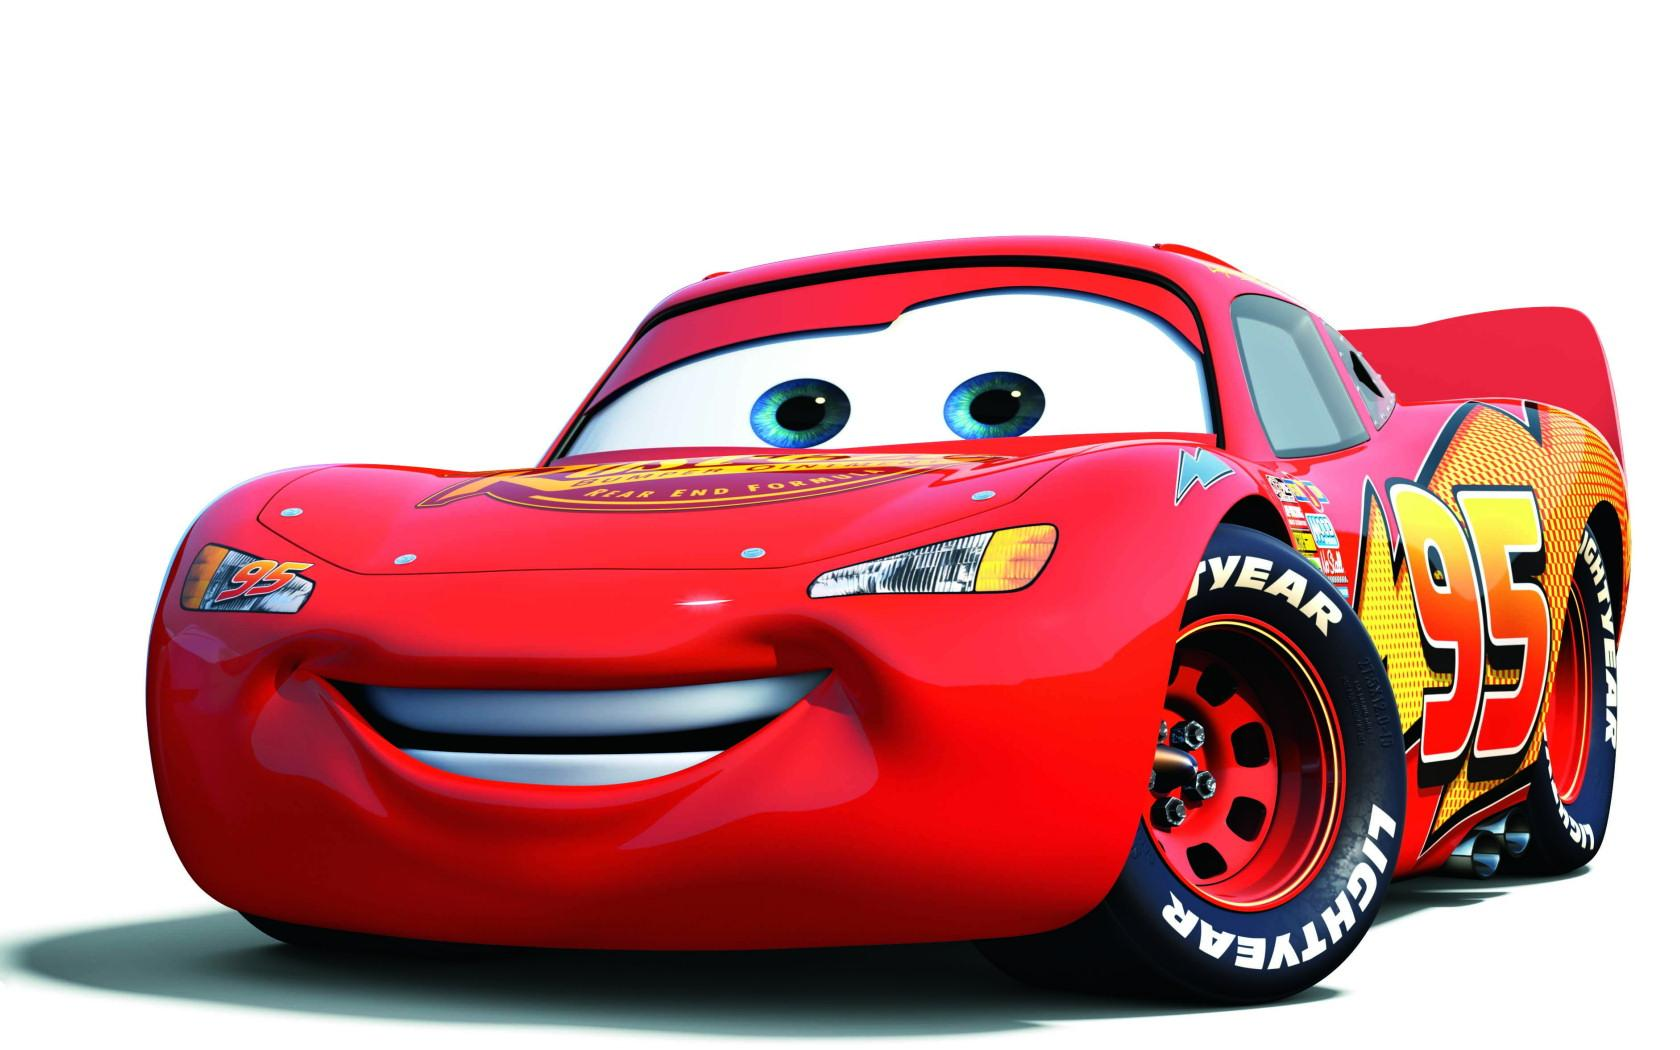 lightning mcqueen clip art download clipart panda free clipart rh clipartpanda com lightning mcqueen and mater clipart lightning mcqueen clipart black and white